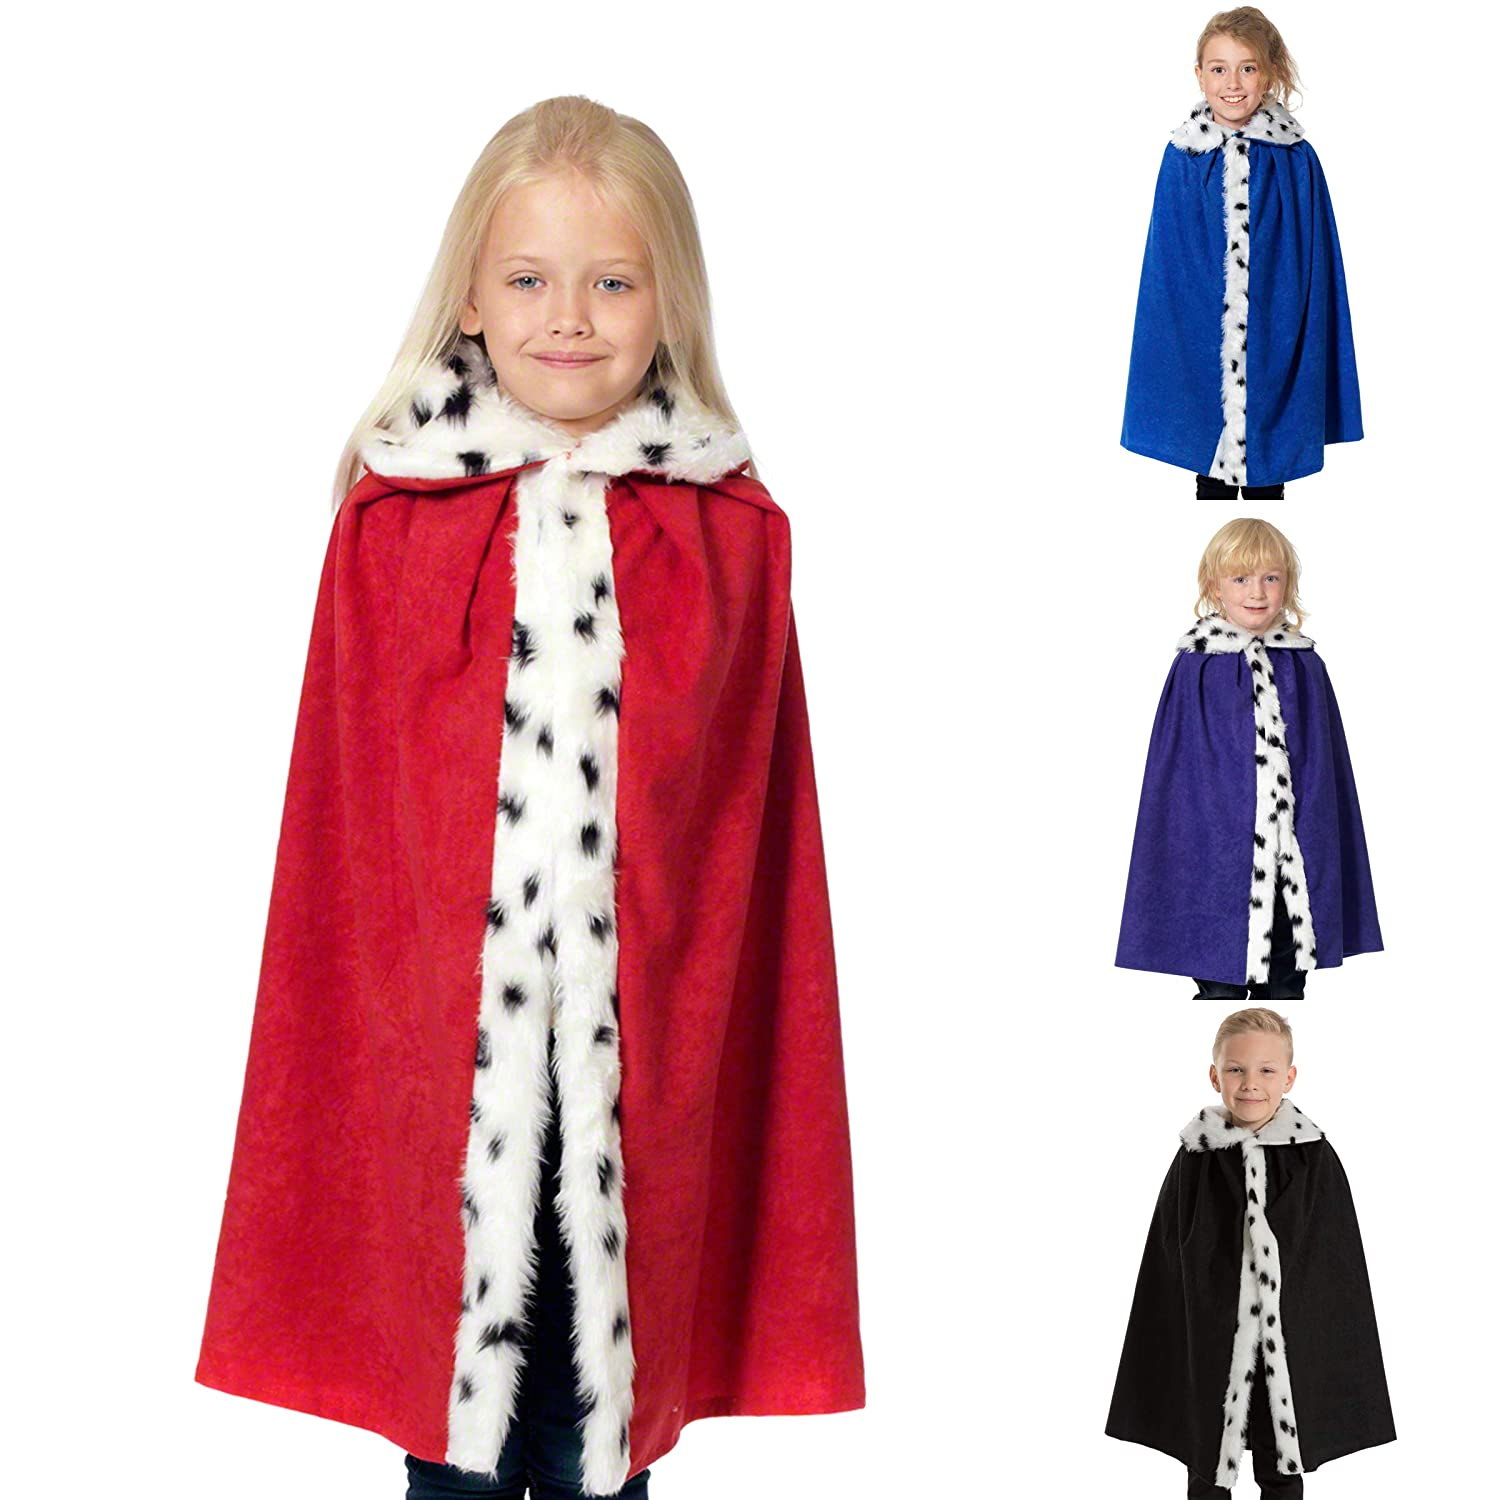 Childs Deluxe King Cloak - Red (disfraz): Amazon.es: Juguetes y juegos